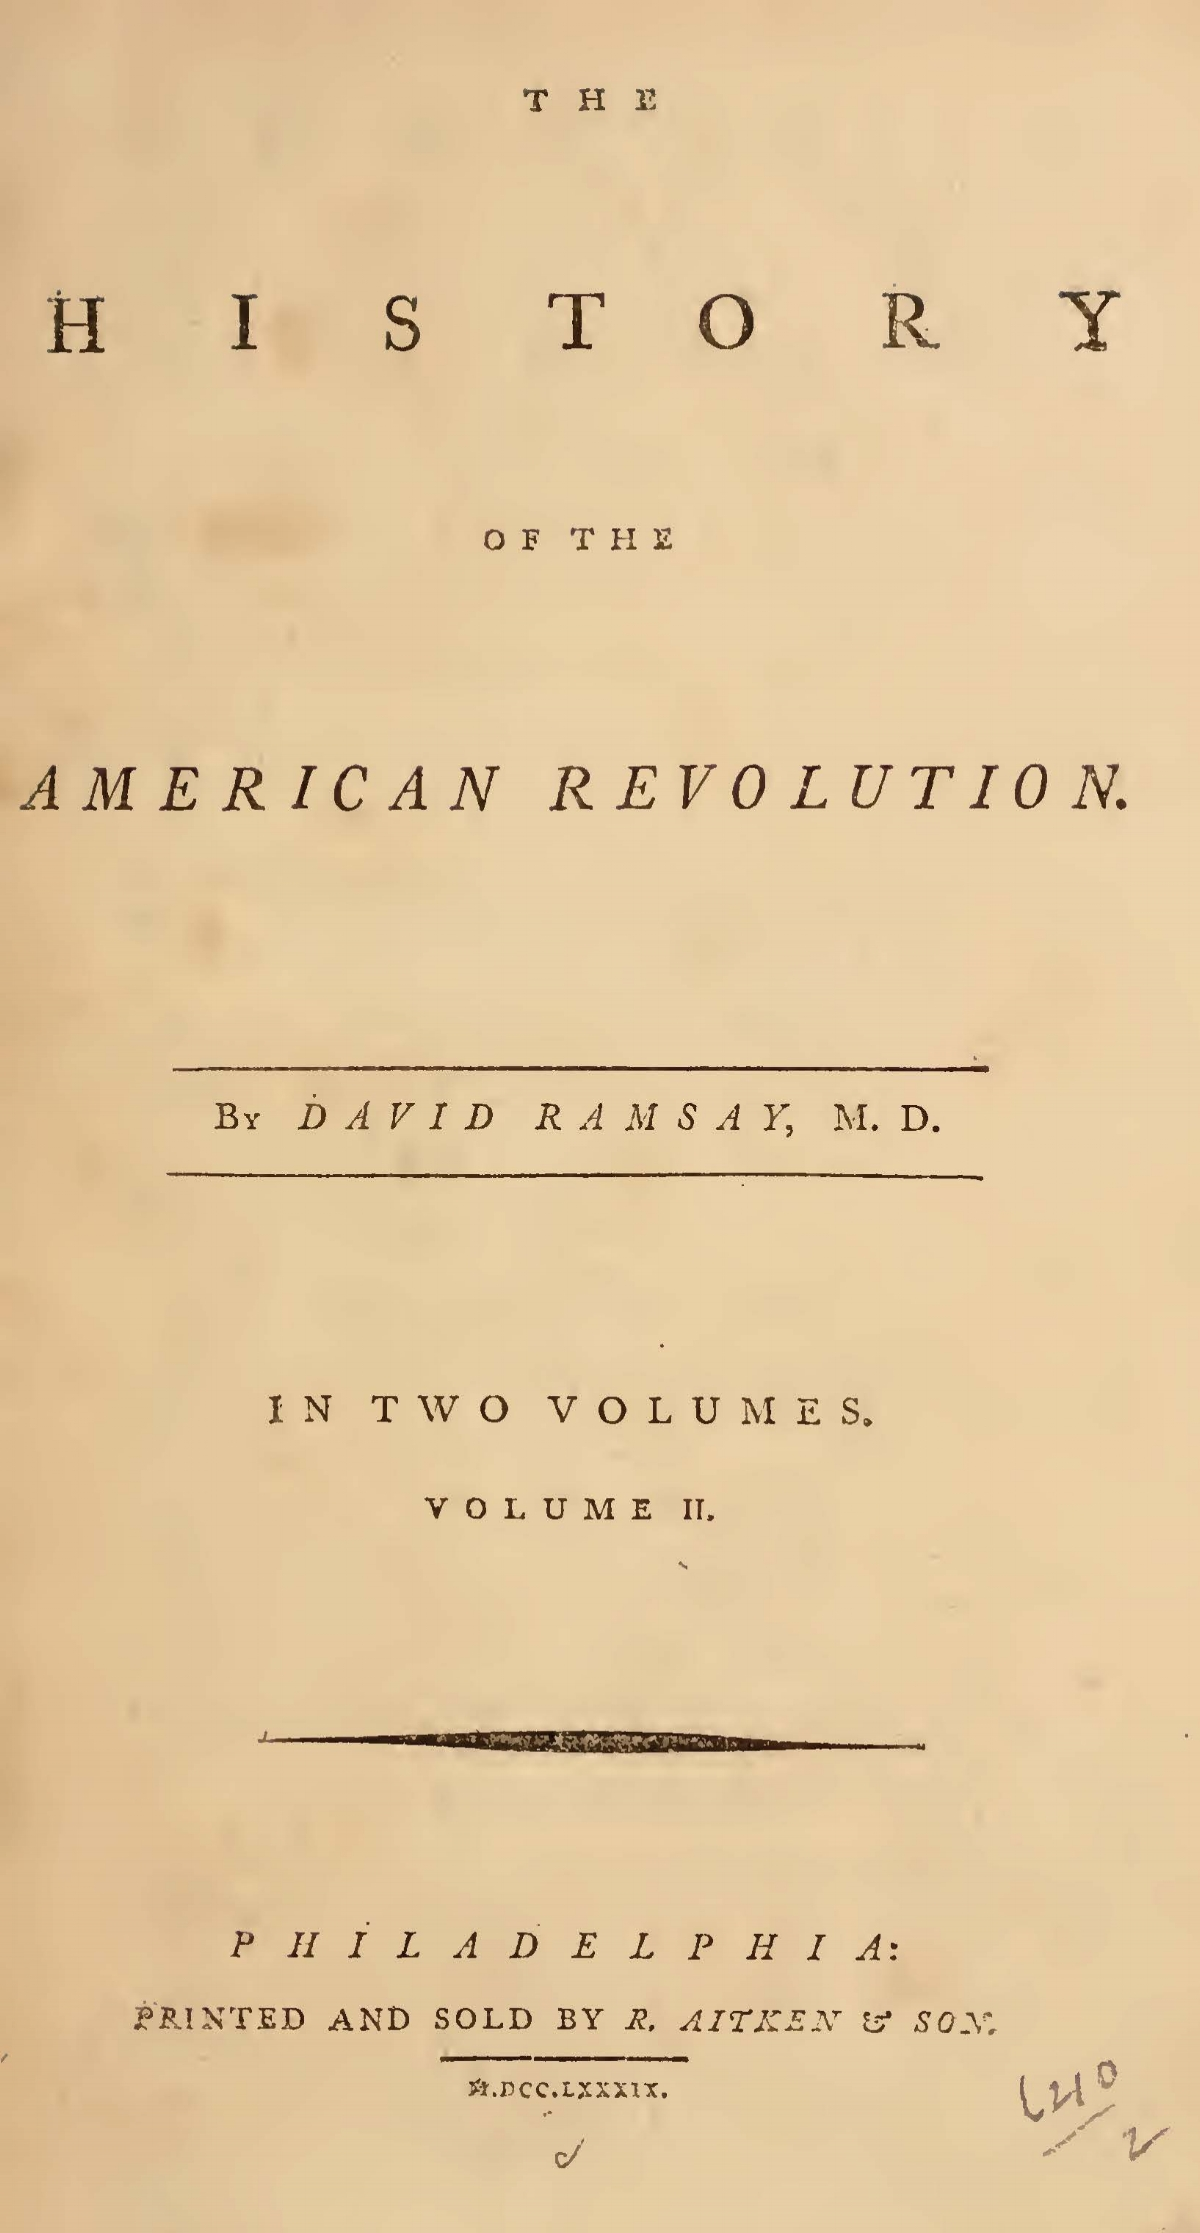 Ramsay, David, The History of the American Revolution, Vol. 2 Title Page.jpg